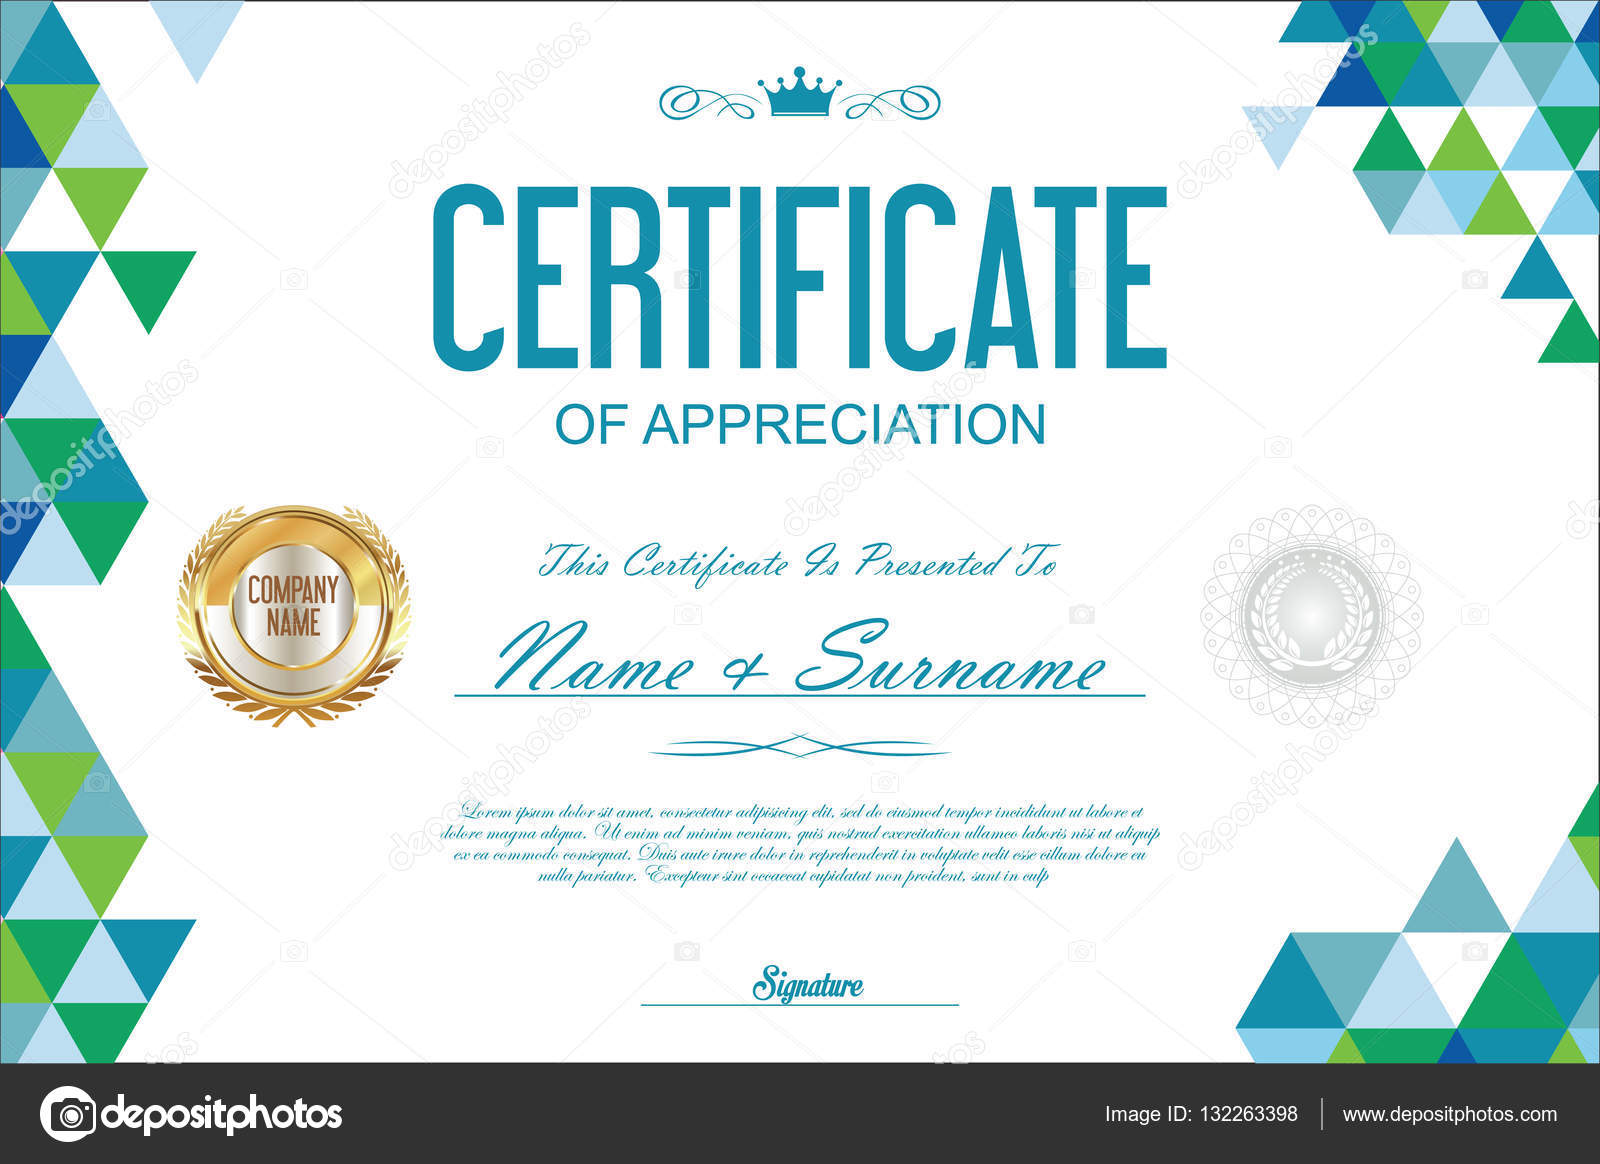 Certificate template abstract geometric design background stock certificate template abstract geometric design background stock vector yadclub Choice Image